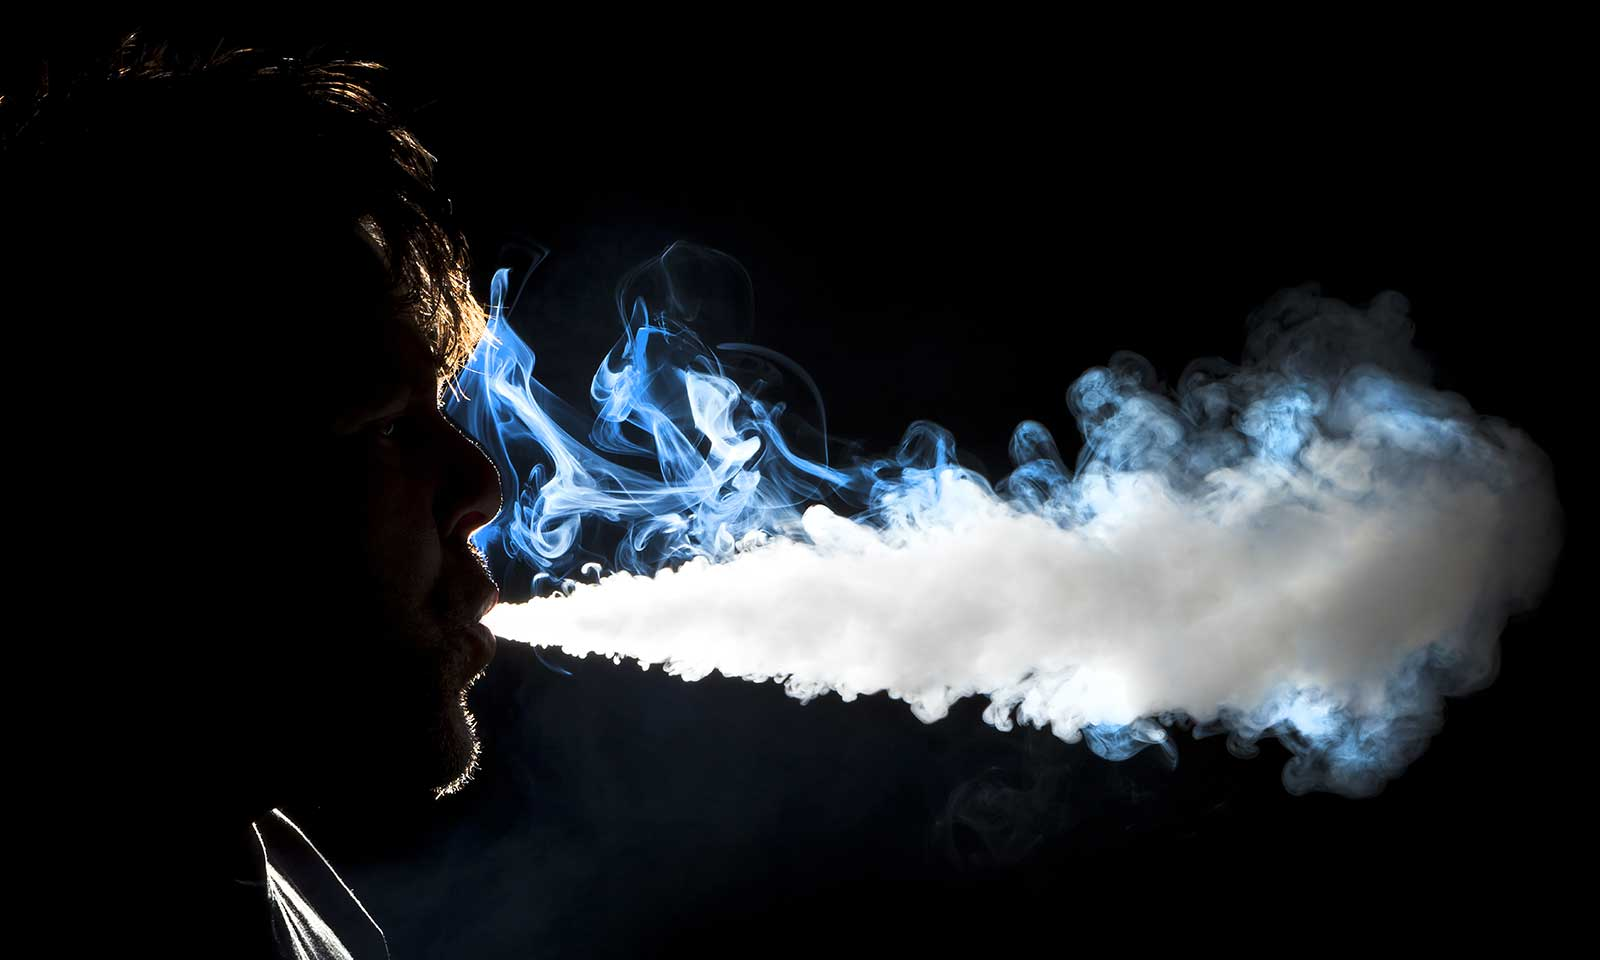 Vaping & Electronic Cigarettes: The Target is Teens!